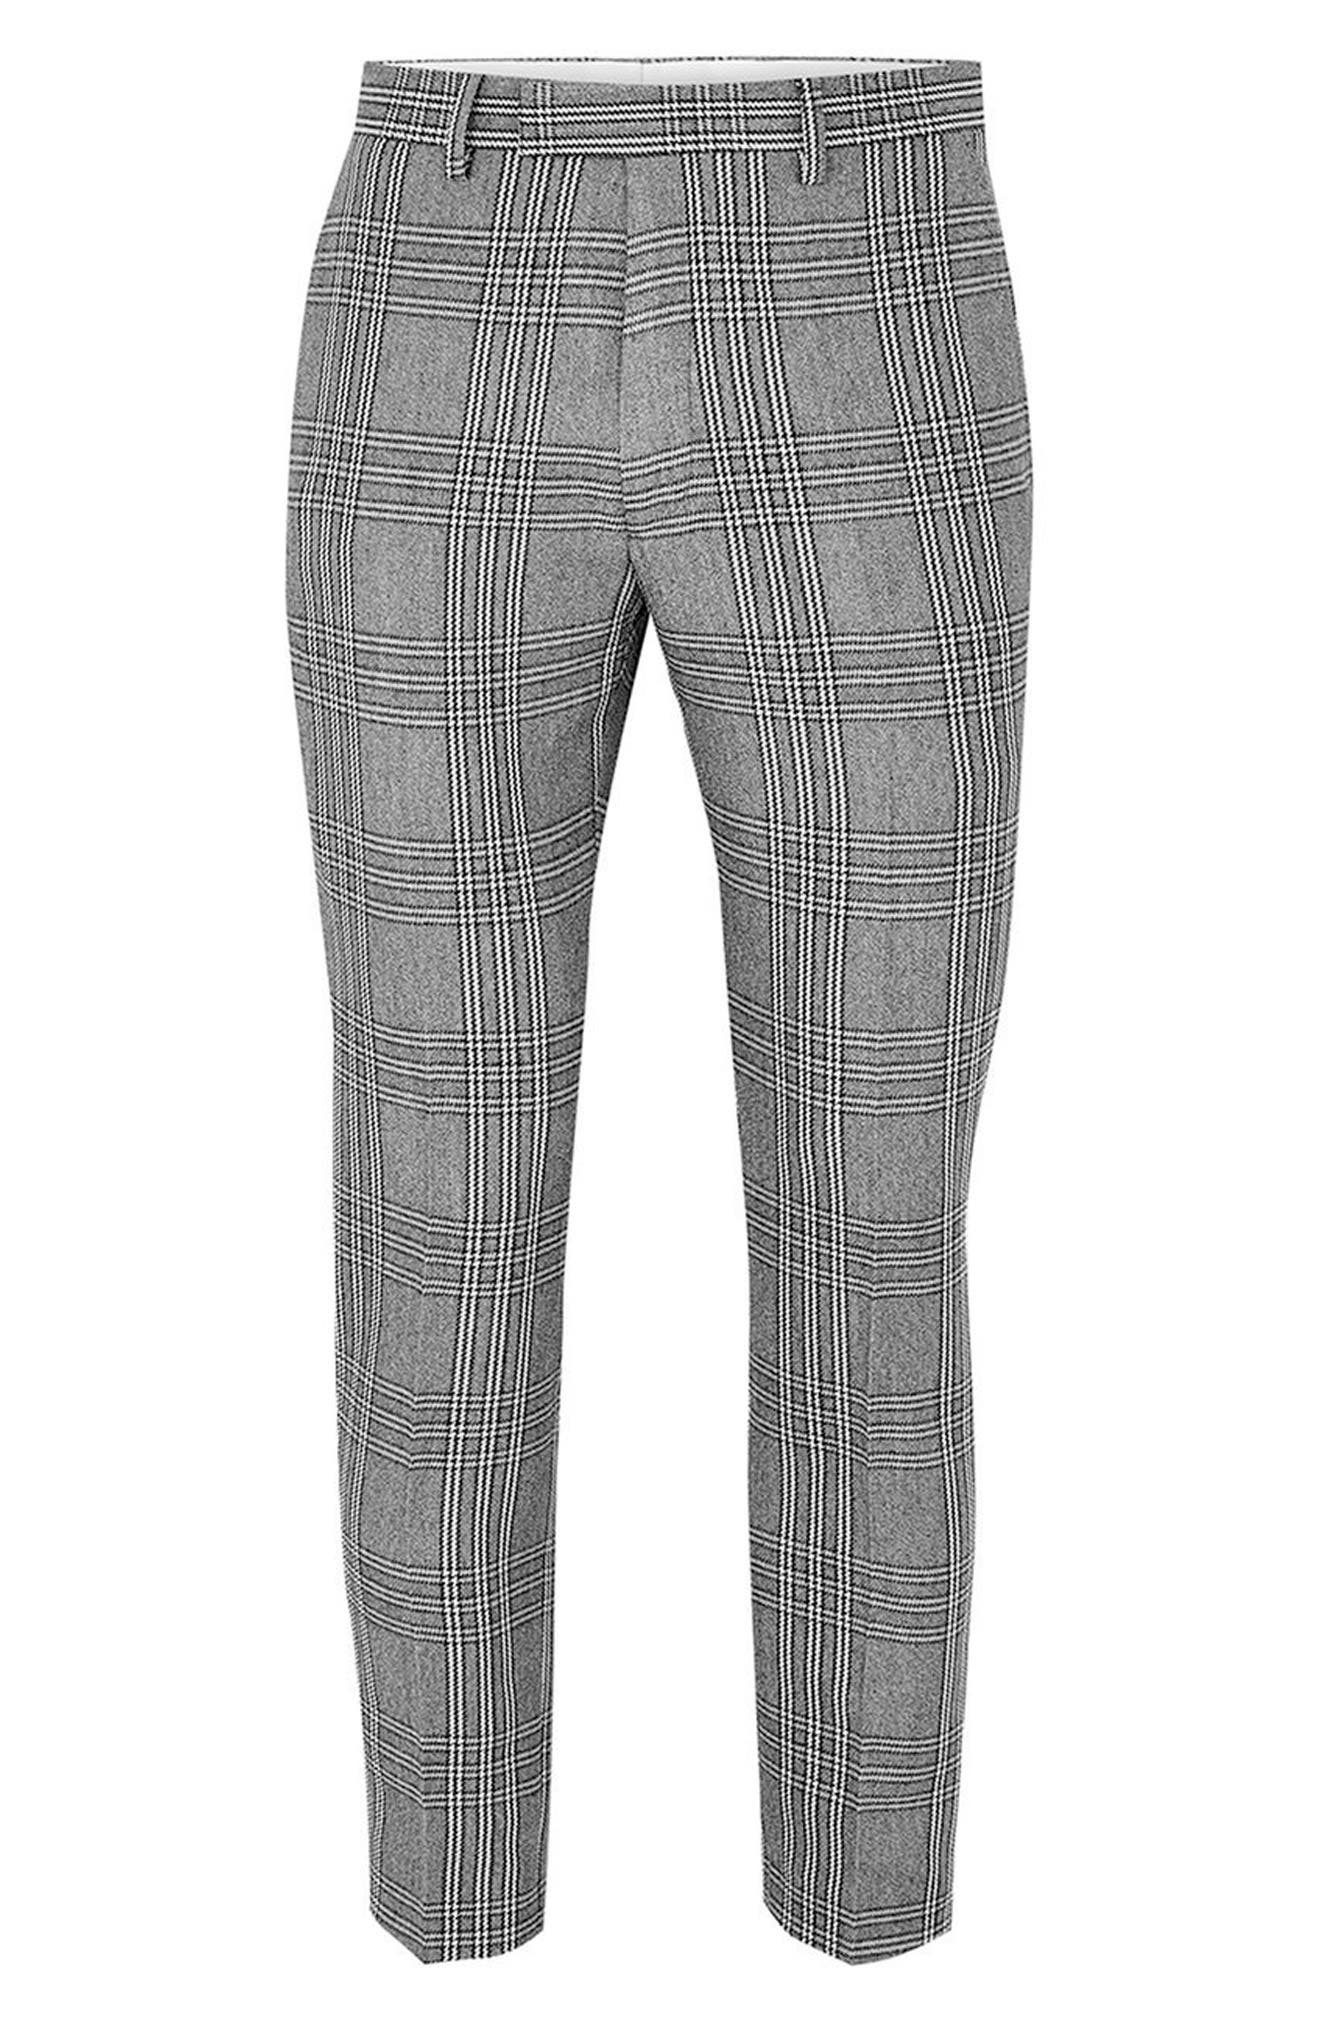 Skinny Fit Check Crop Trousers,                             Alternate thumbnail 4, color,                             Grey Multi